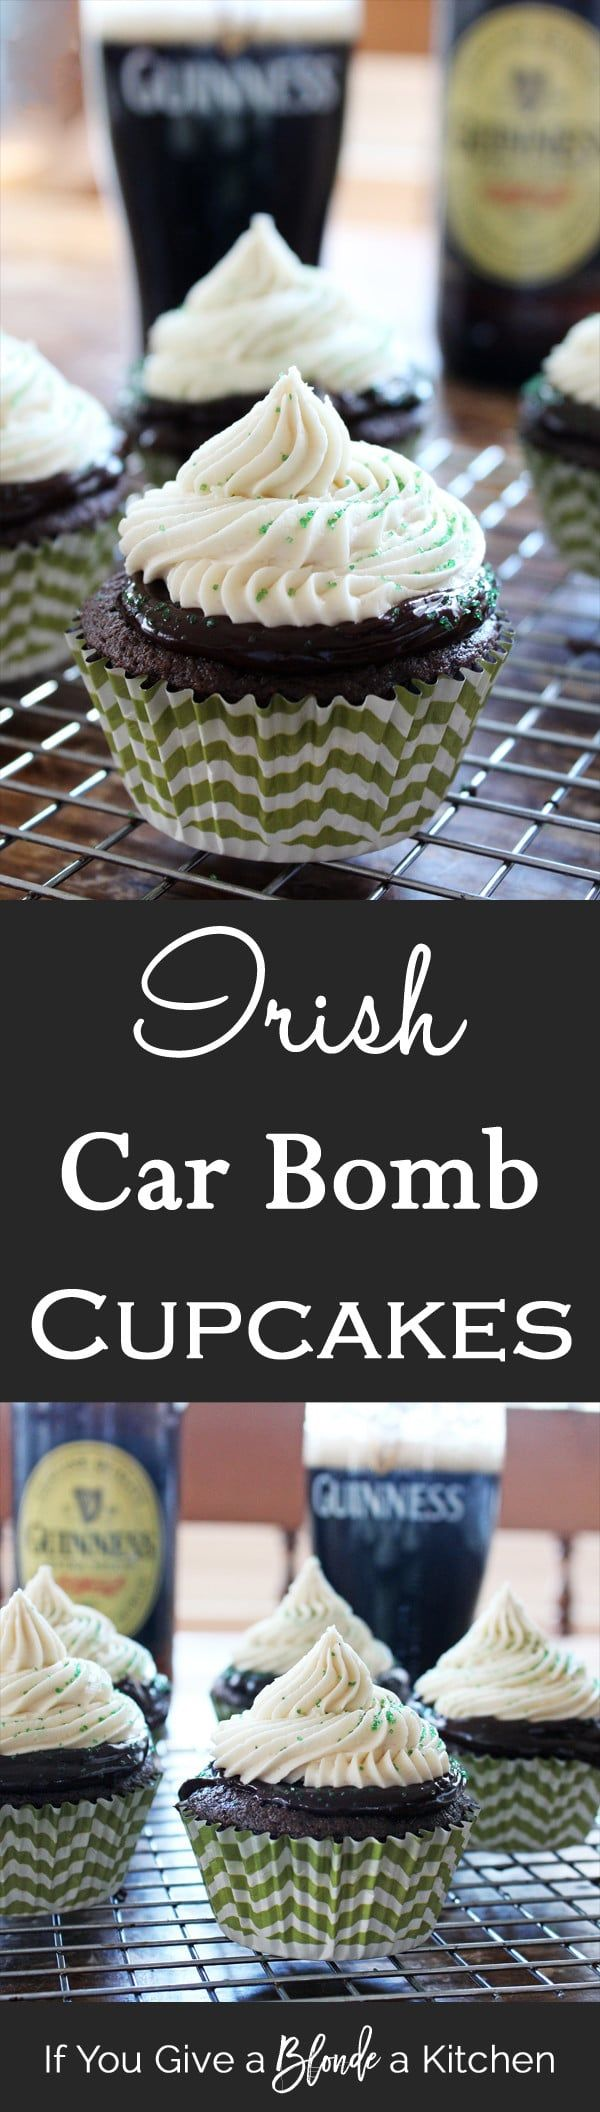 Irish Car Bomb Cupcakes are made of Guinness cake, Jameson Whiskey chocolate ganache and Bailey's buttercream frosting—the perfect St. Patrick's Day treat!